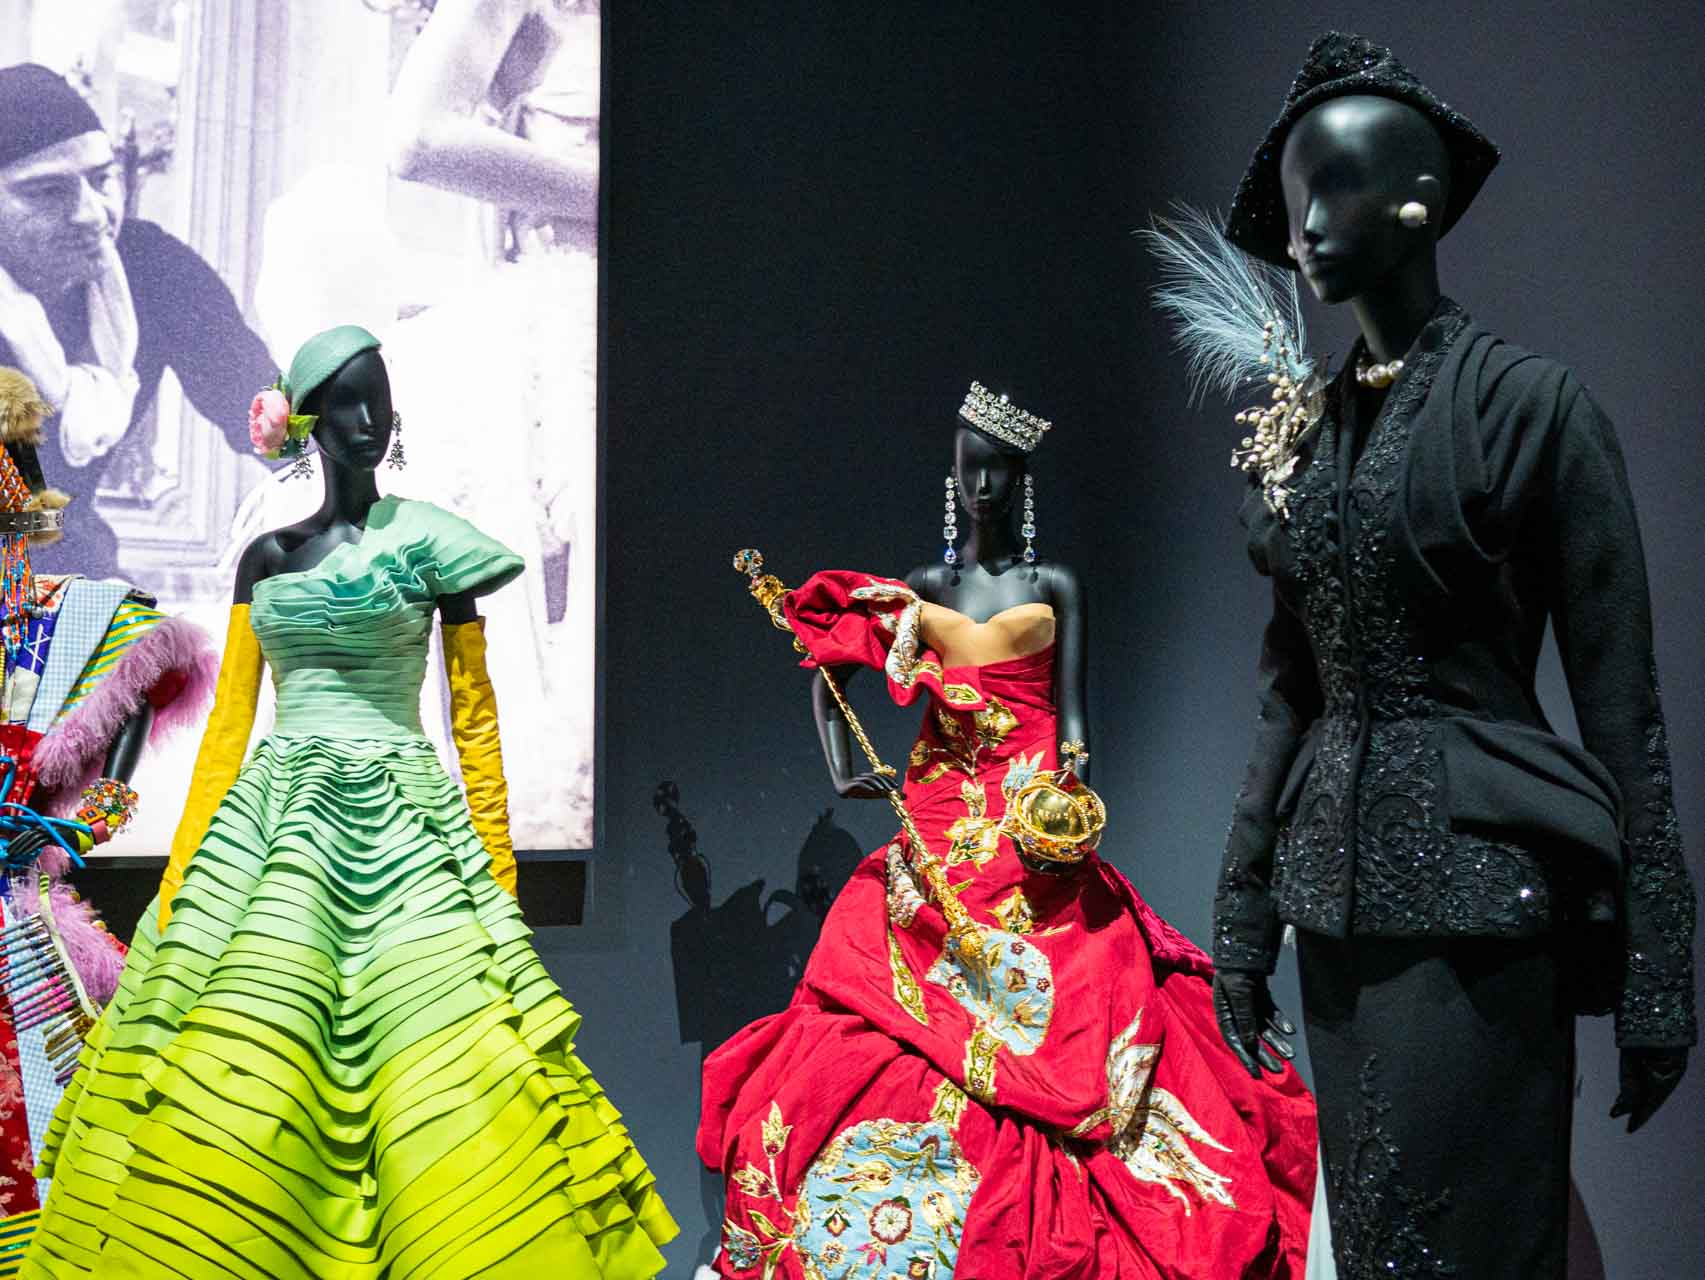 Designs by John Galliano for Christian Dior. Taken at the V&A exhibition © The Cutting Class, 2019.